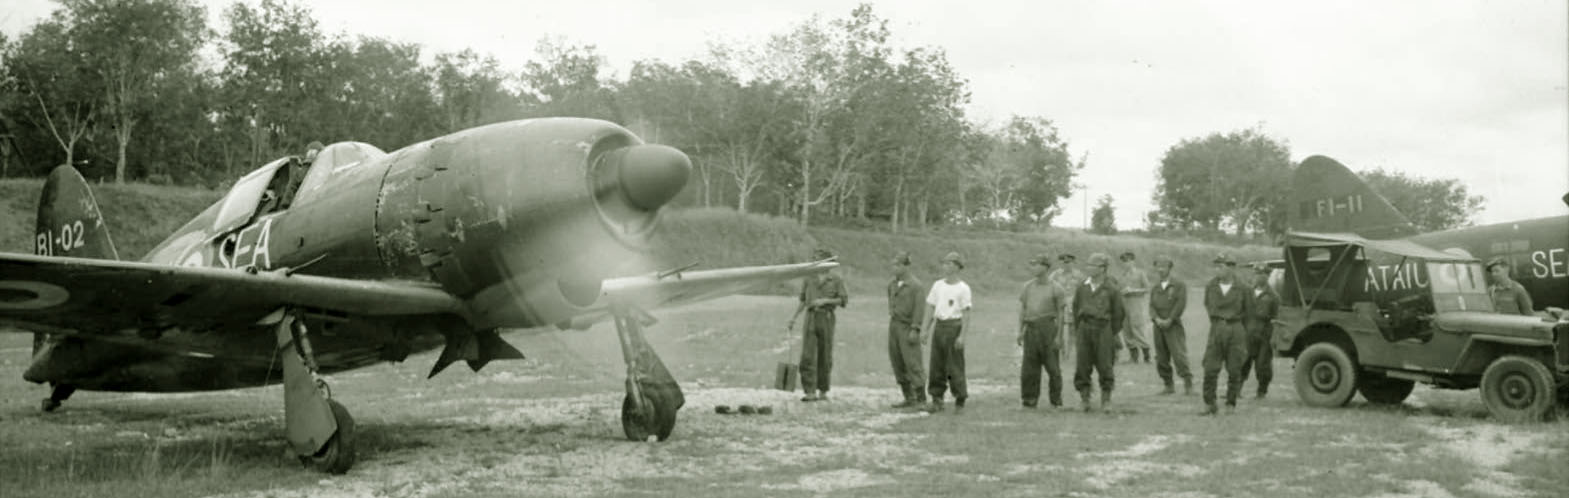 J2m3 Raiden bl-02 tested by British in Malaya 1945